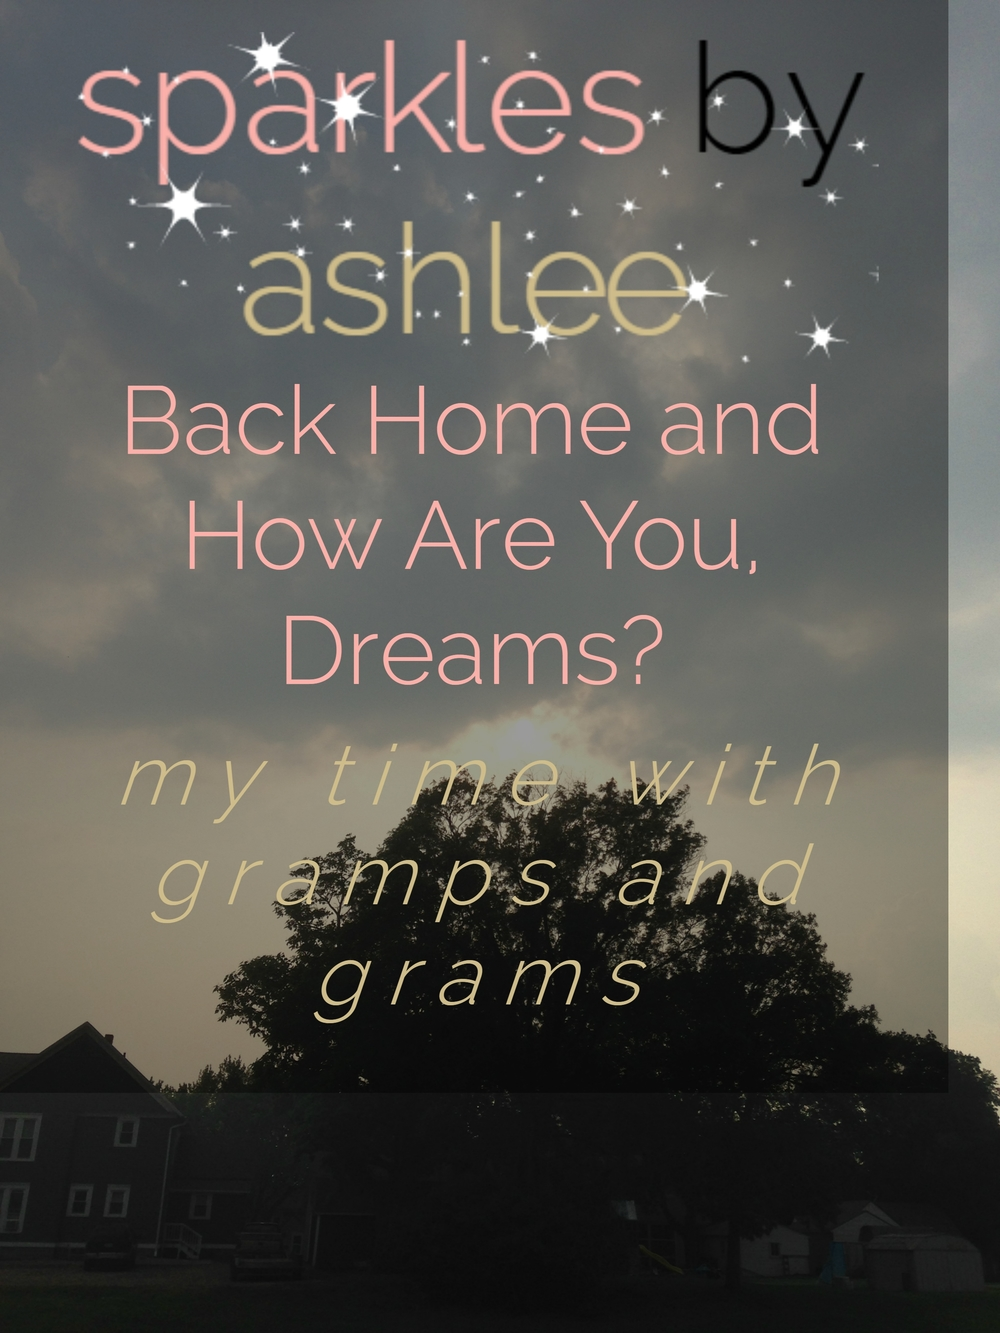 Lets-Catch-Up-Back-Home-and-How-Are-You-Dreams-Sparkles-by-Ashlee.jpg